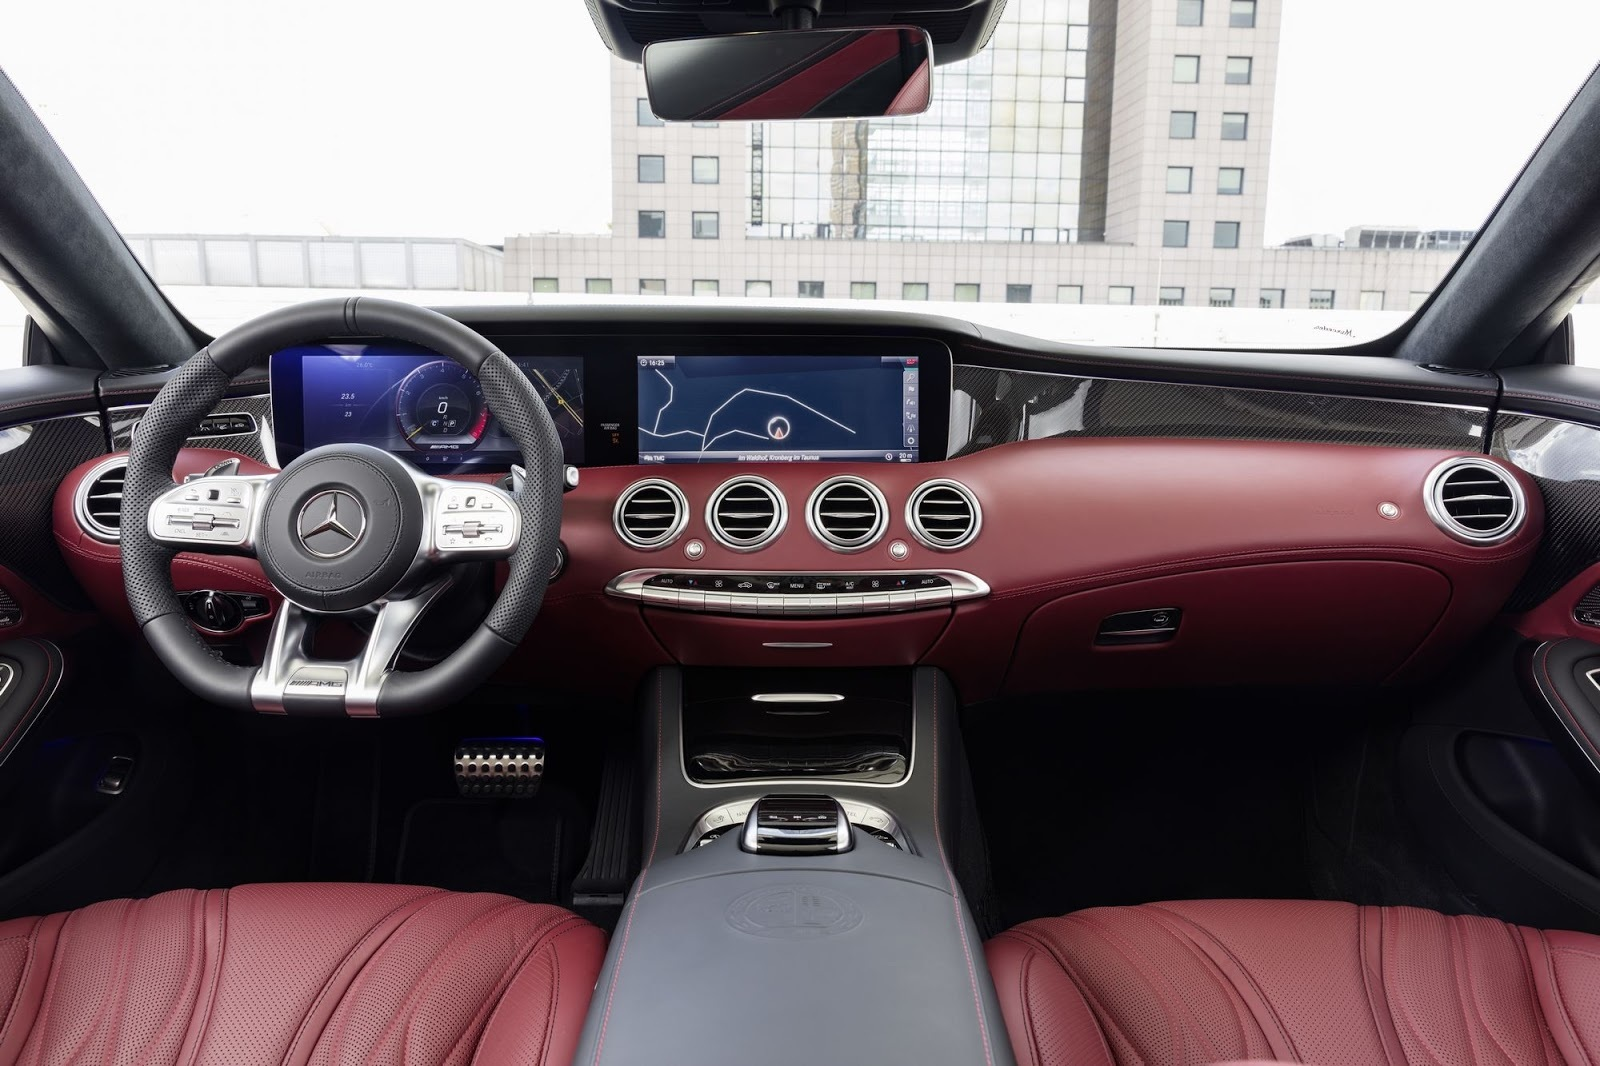 2018-Mercedes-AMG-S63-S65-Coupe-Cabriolet-15.JPG